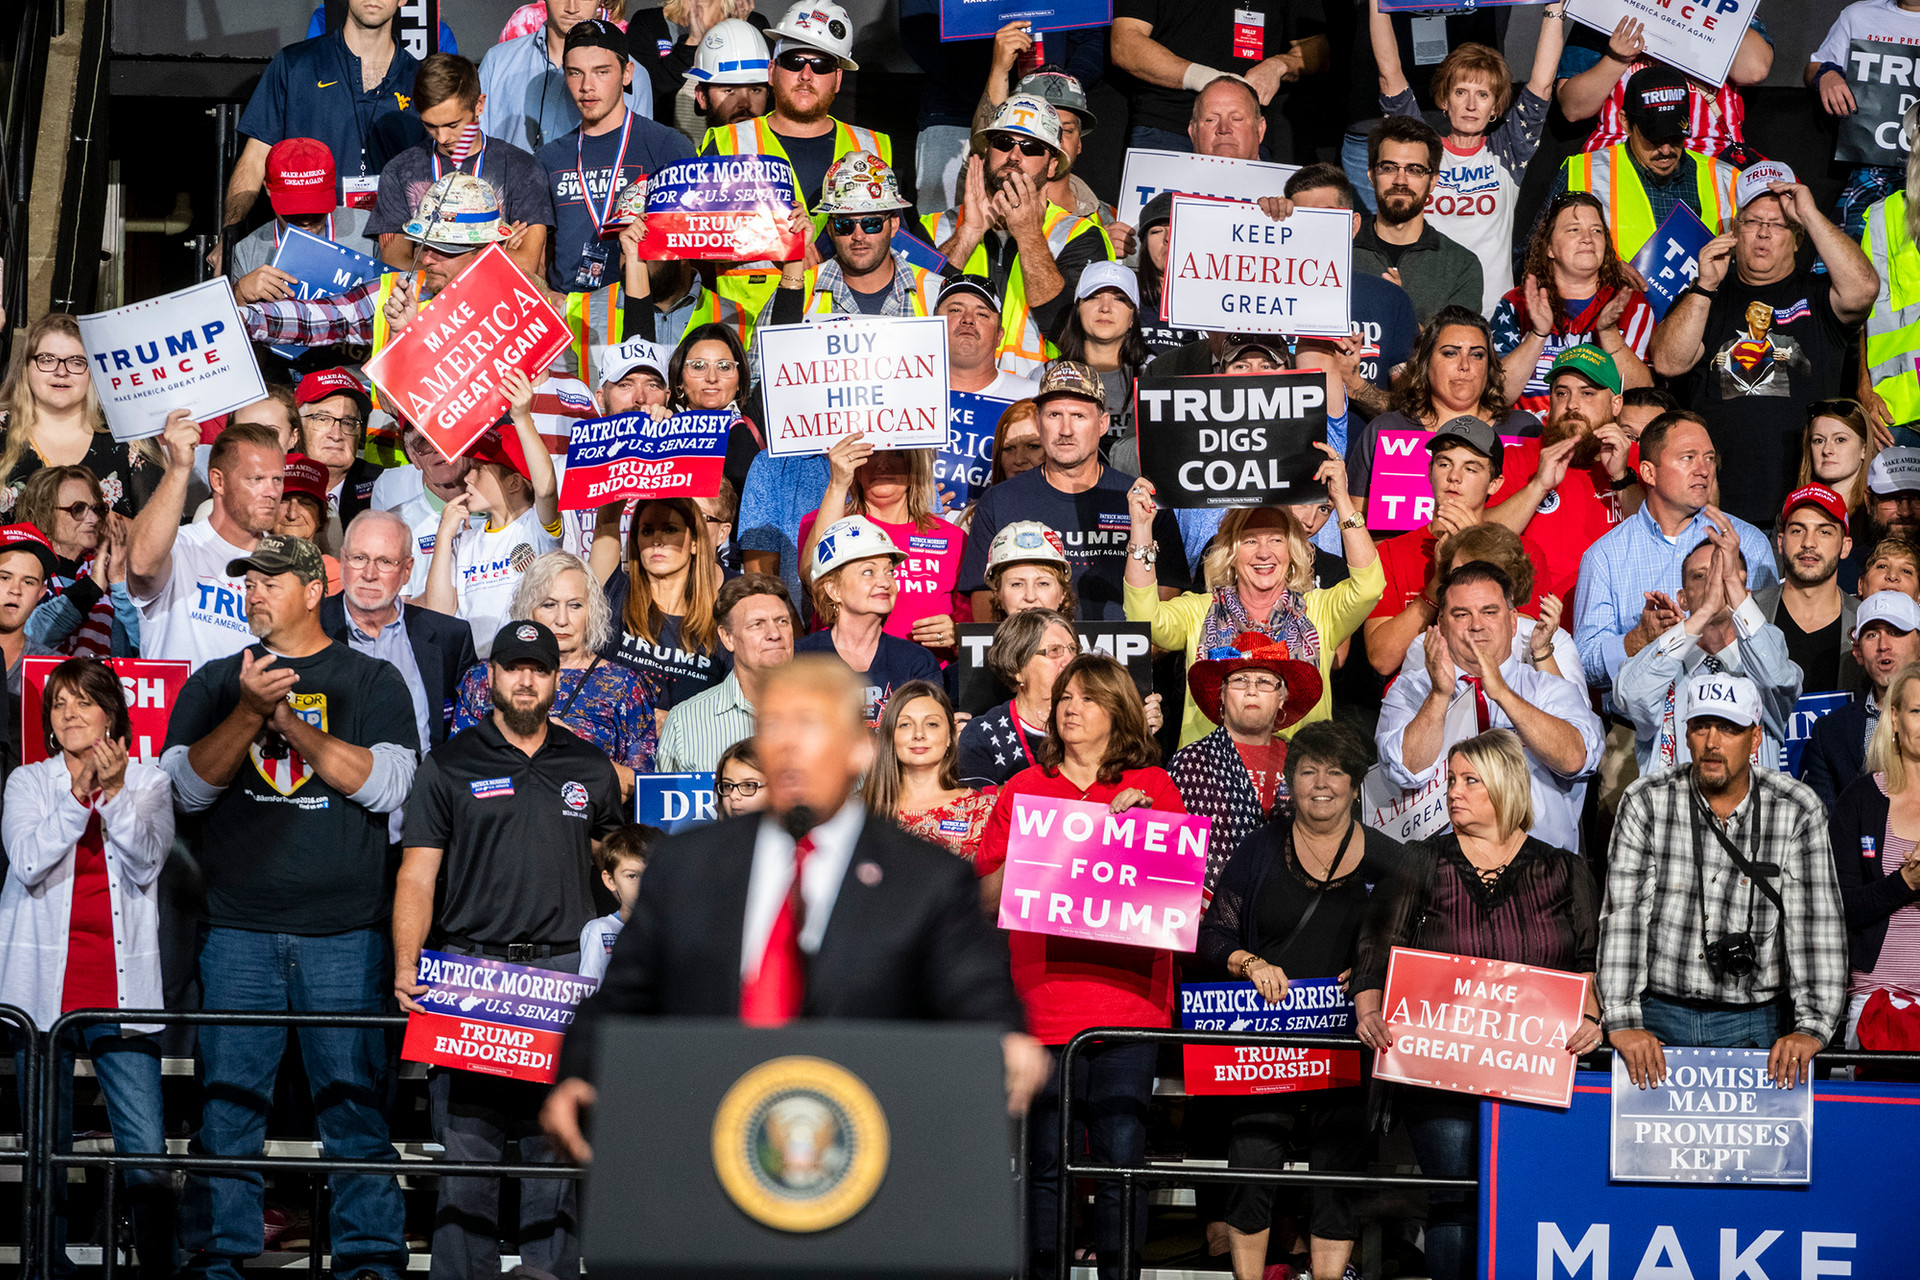 President Donald Trump speaks to supporters at his Trump MAGA rally in support of Patrick Morrisey for US. Senate at Wesbanco Arena on Saturday September 29, 2018, in Wheeling, Wv.